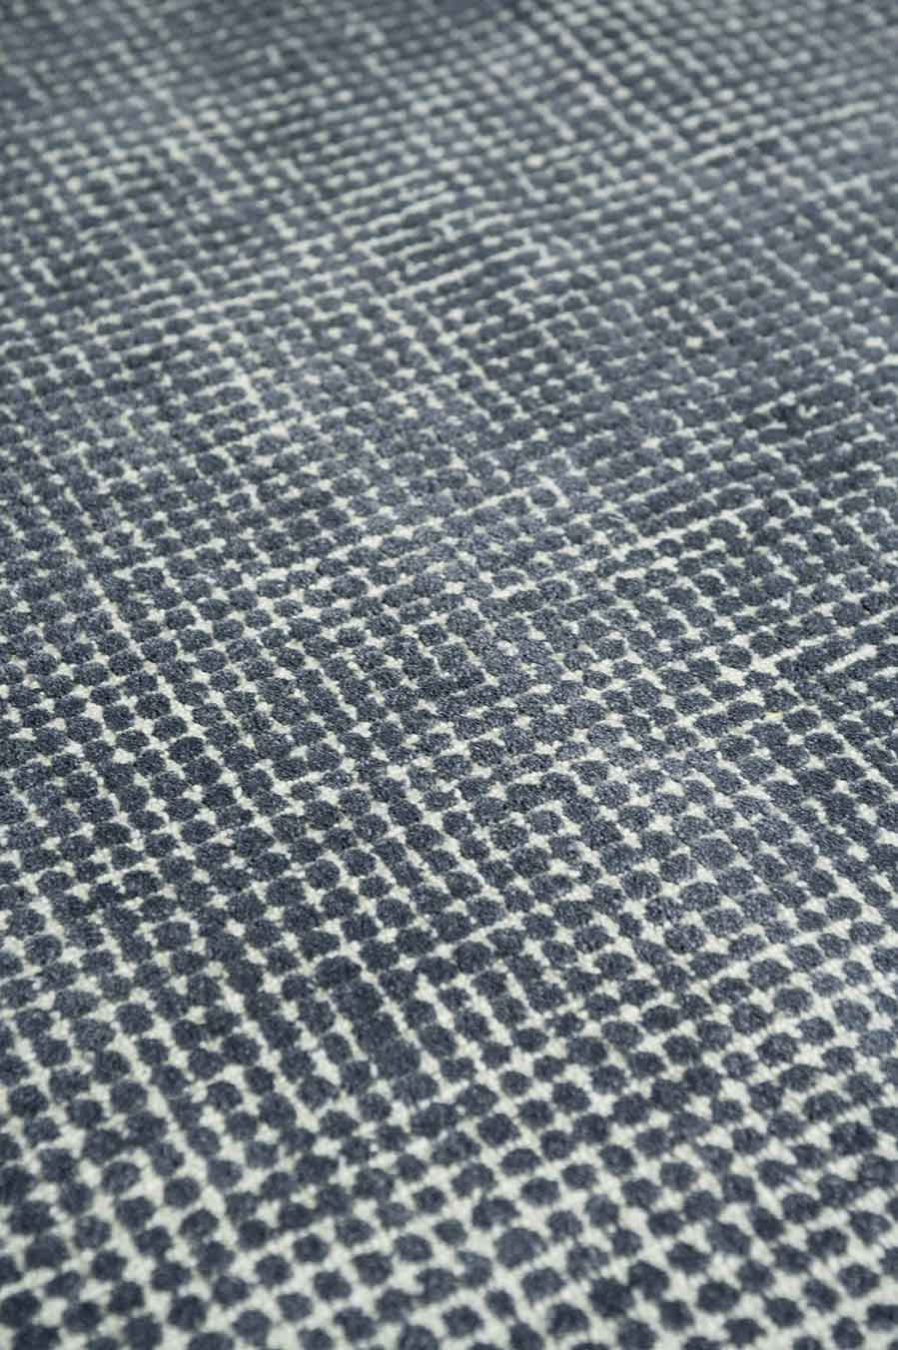 Detailed view of textured Sorrento rug in denim blue colour